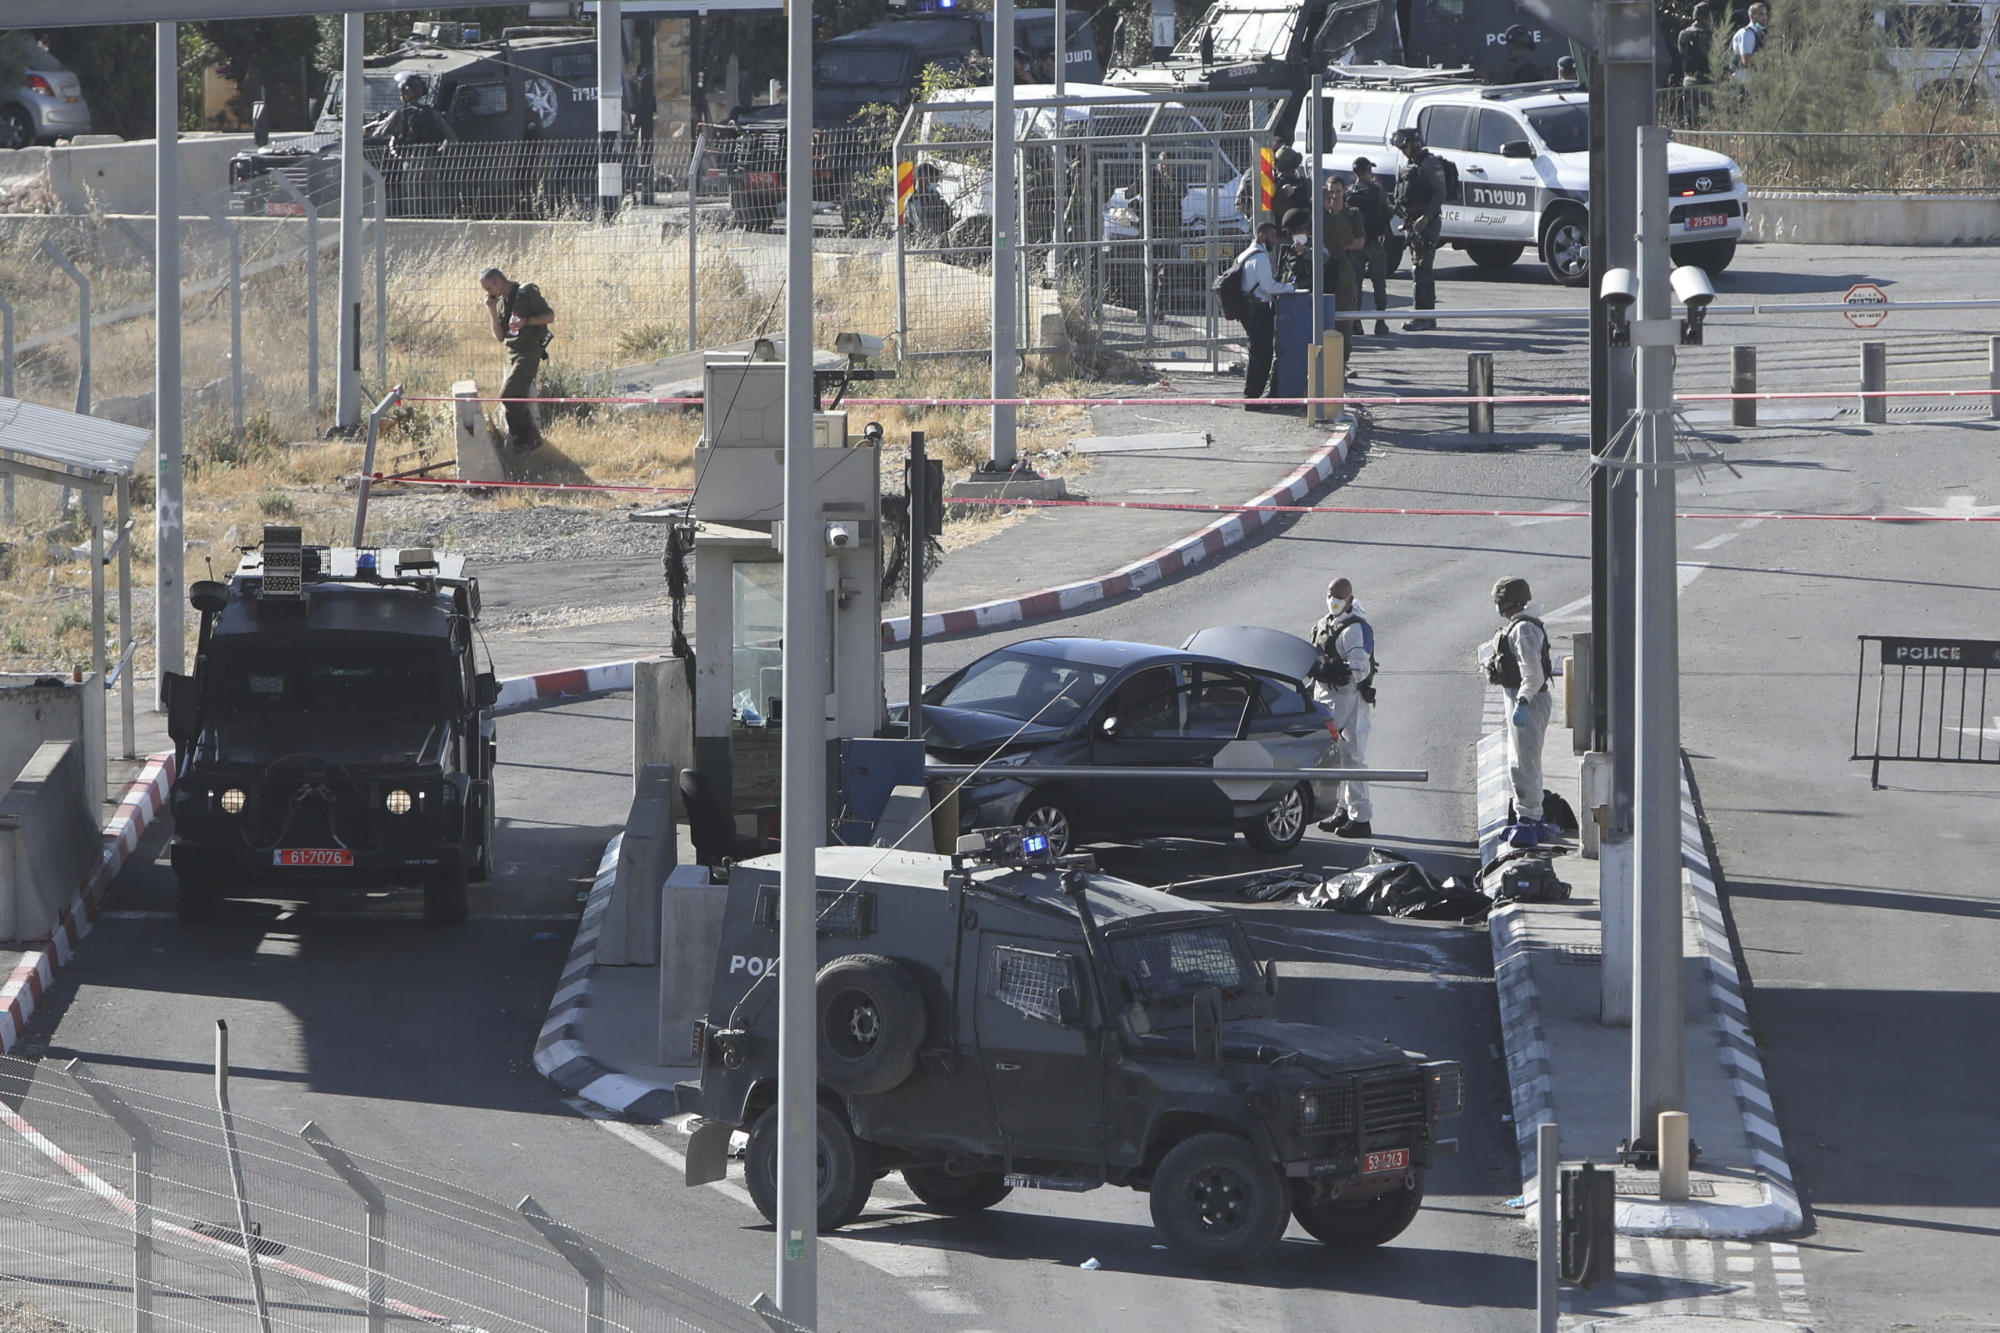 Report of questions claim that Palestinian was shot in self-defense